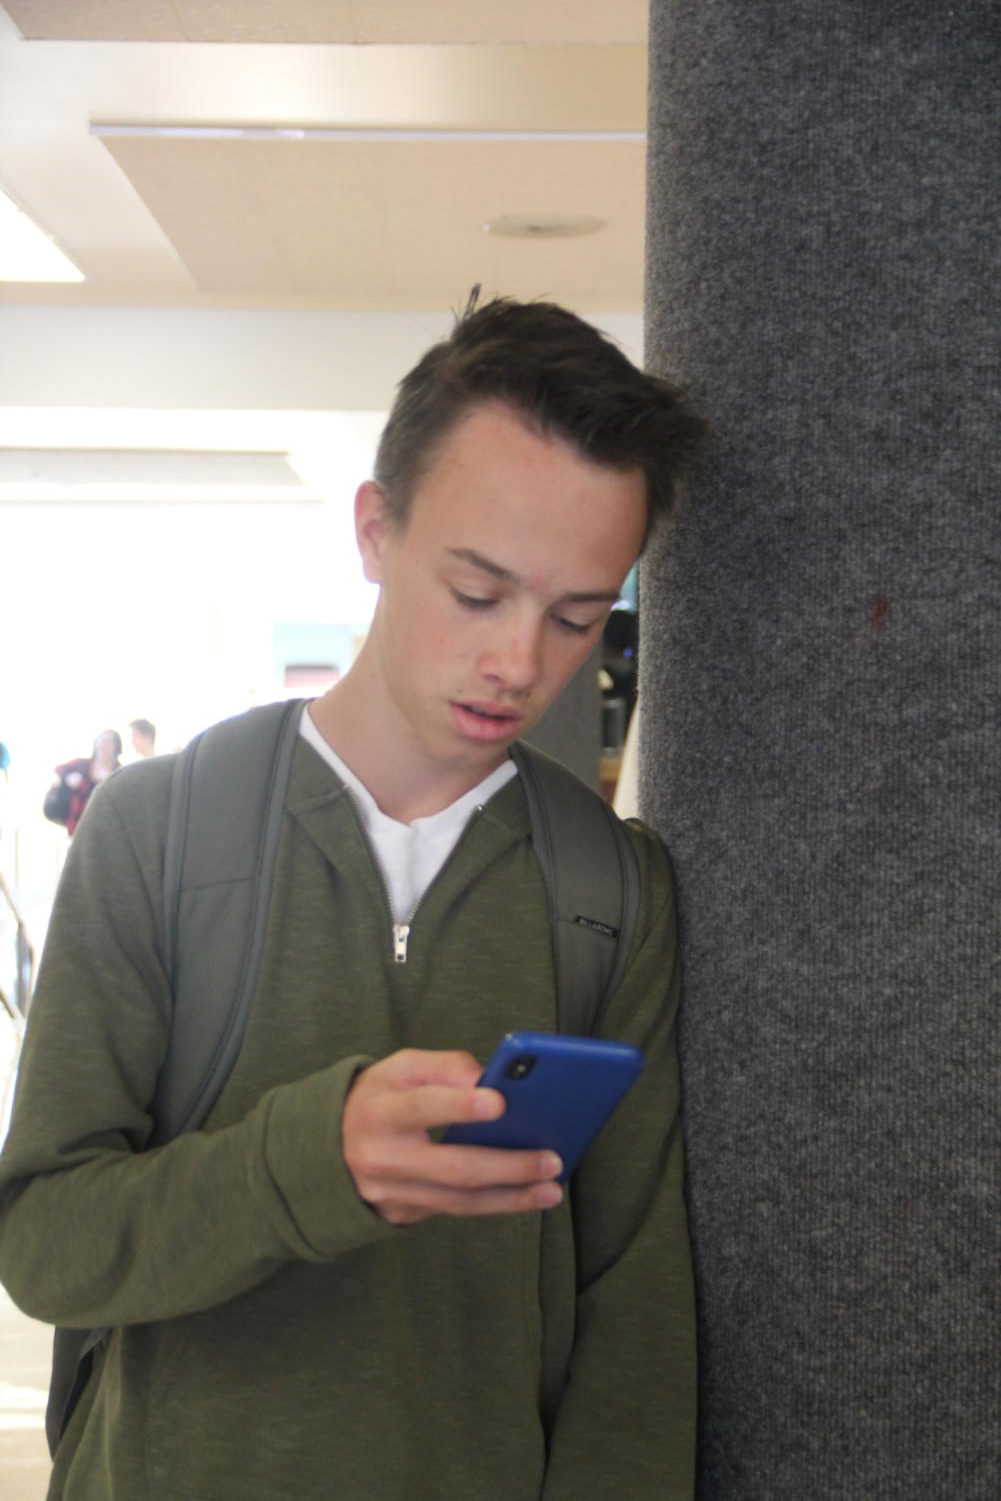 Wil Beasley looks at his phone, something teens are doing more frequently than ever.